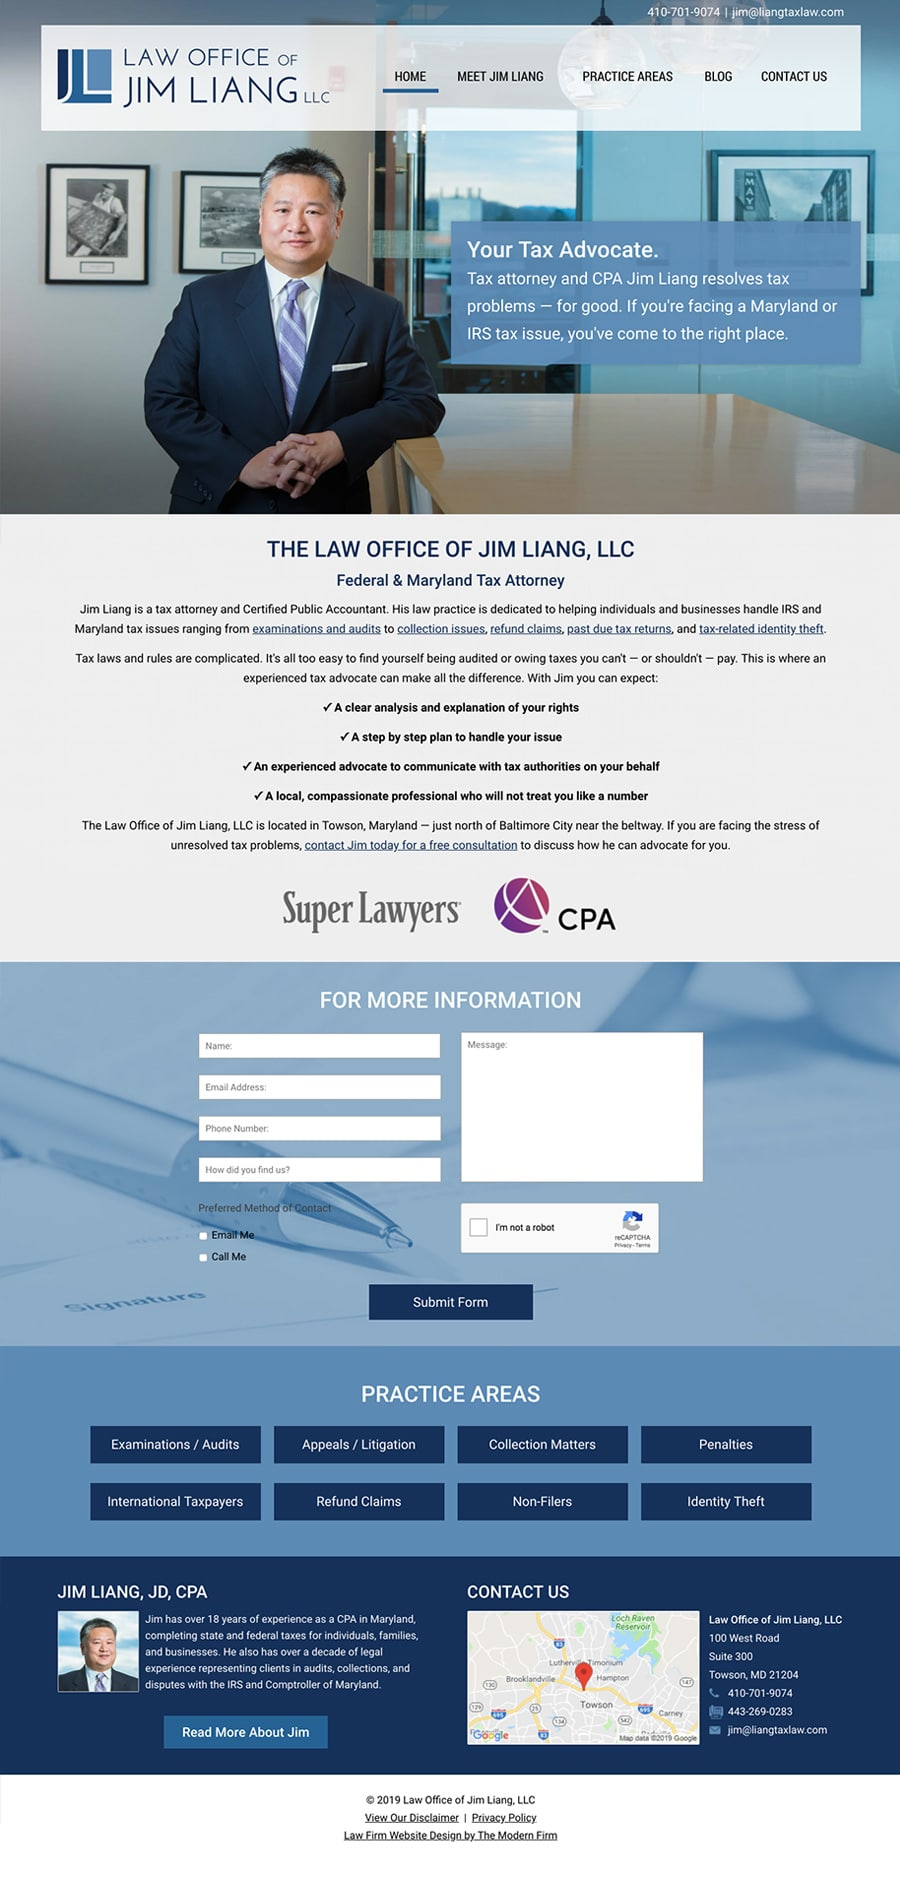 Law Firm Website Design for Law Office of Jim Liang, LLC